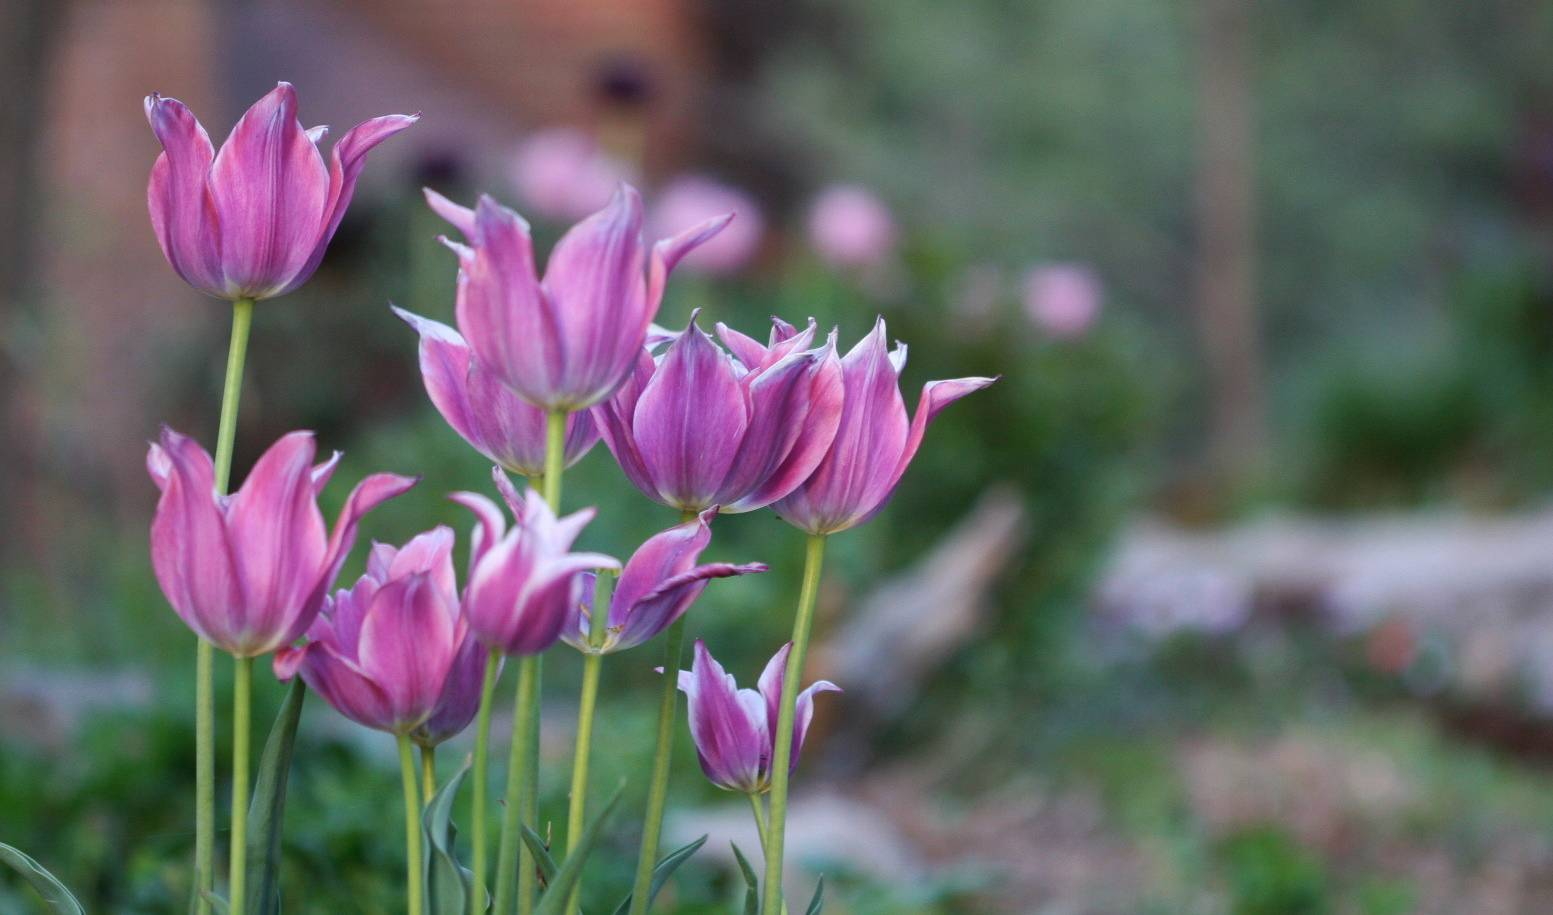 Spring flowering bulbs can be cut back after they bloom, but premature pruning will see them return with fewer and smaller blossoms. That includes tulips, daffodils, hyacinths, crocus, alliums and specialty varieties.